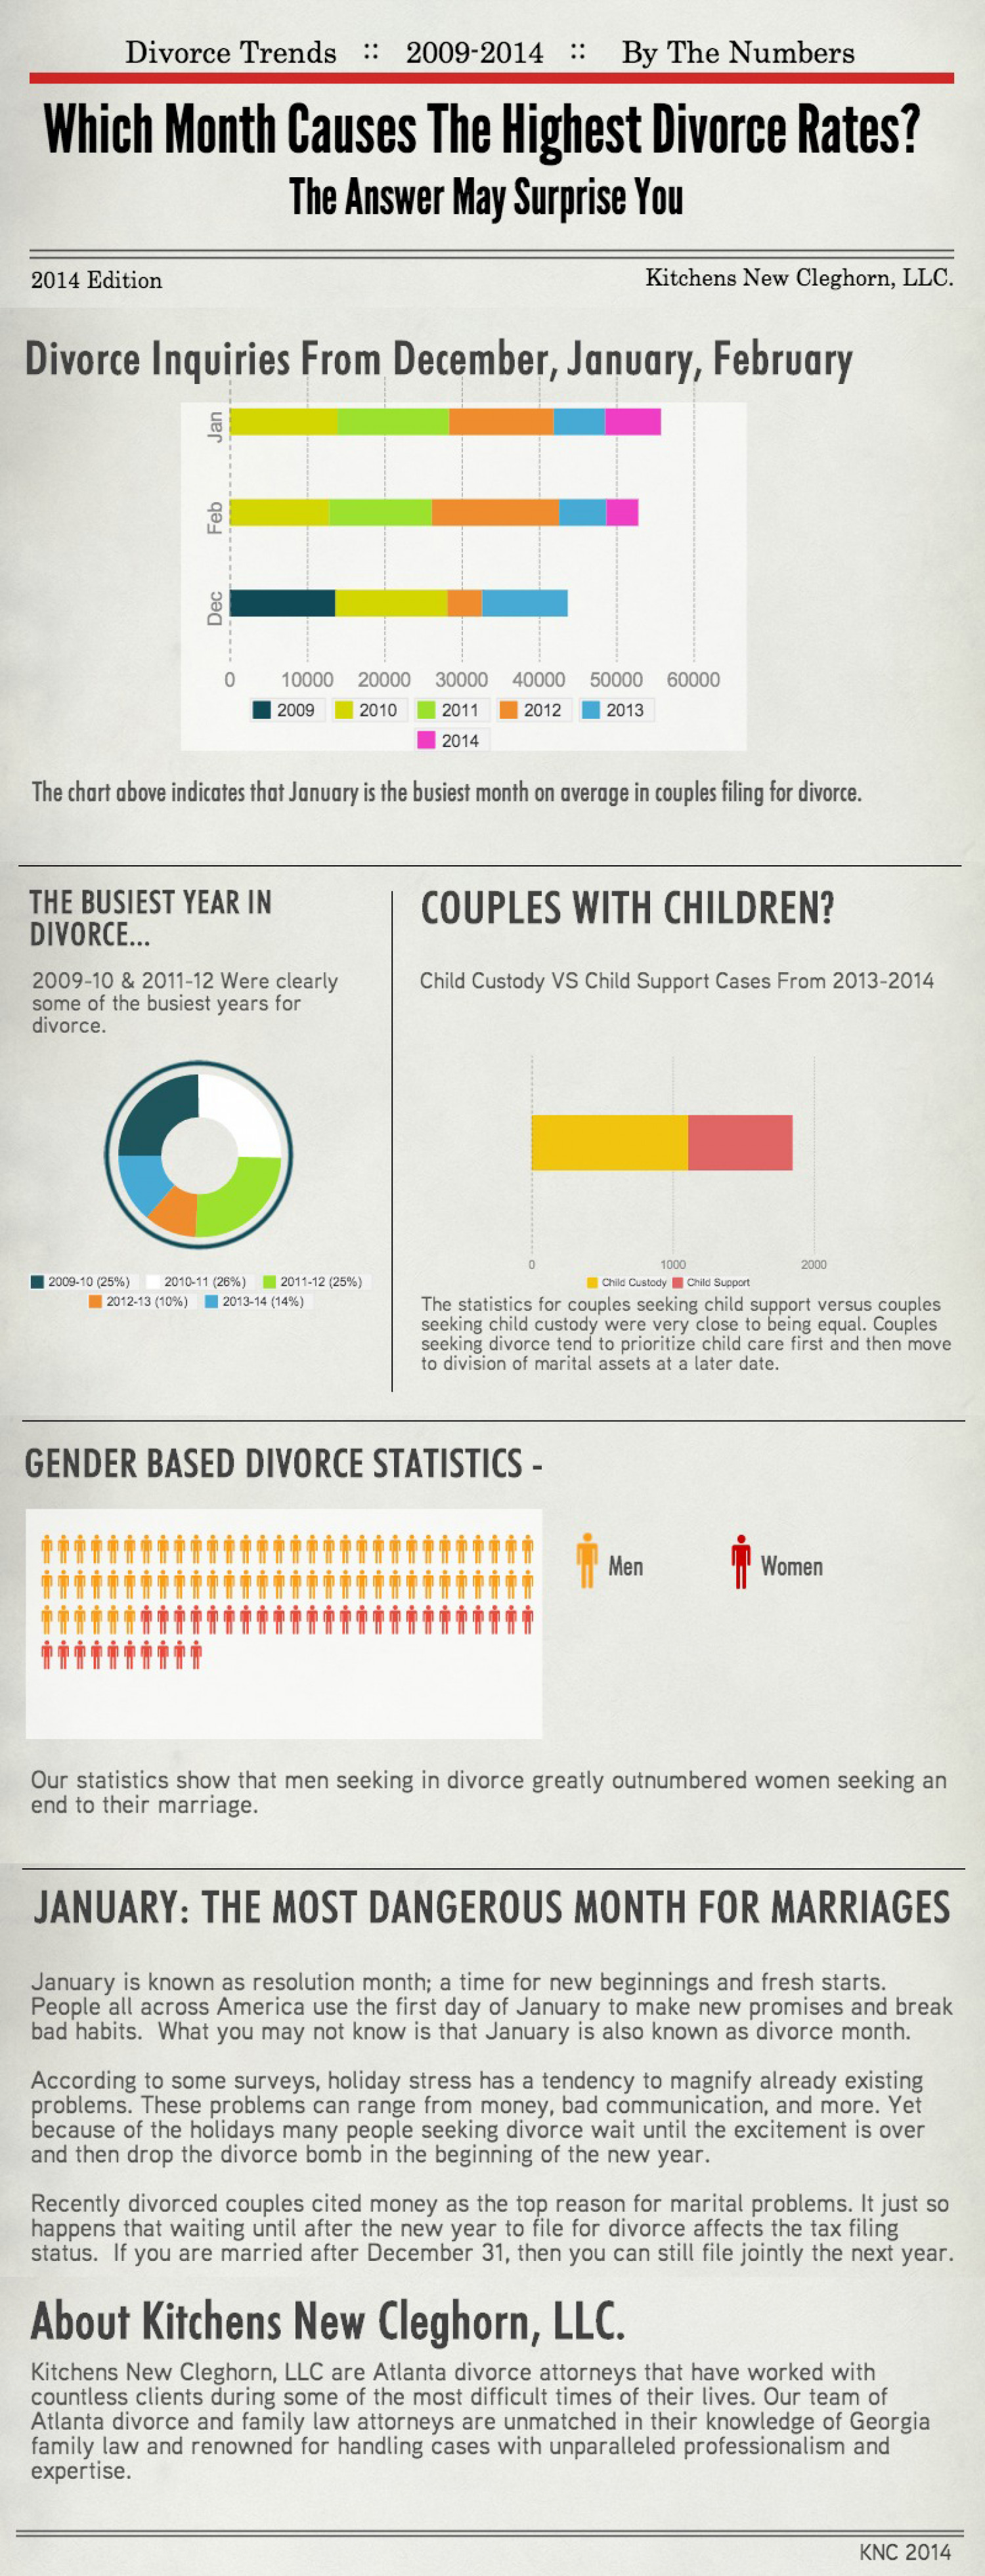 Which Month Causes The Highest Divorce Rates? Infographic